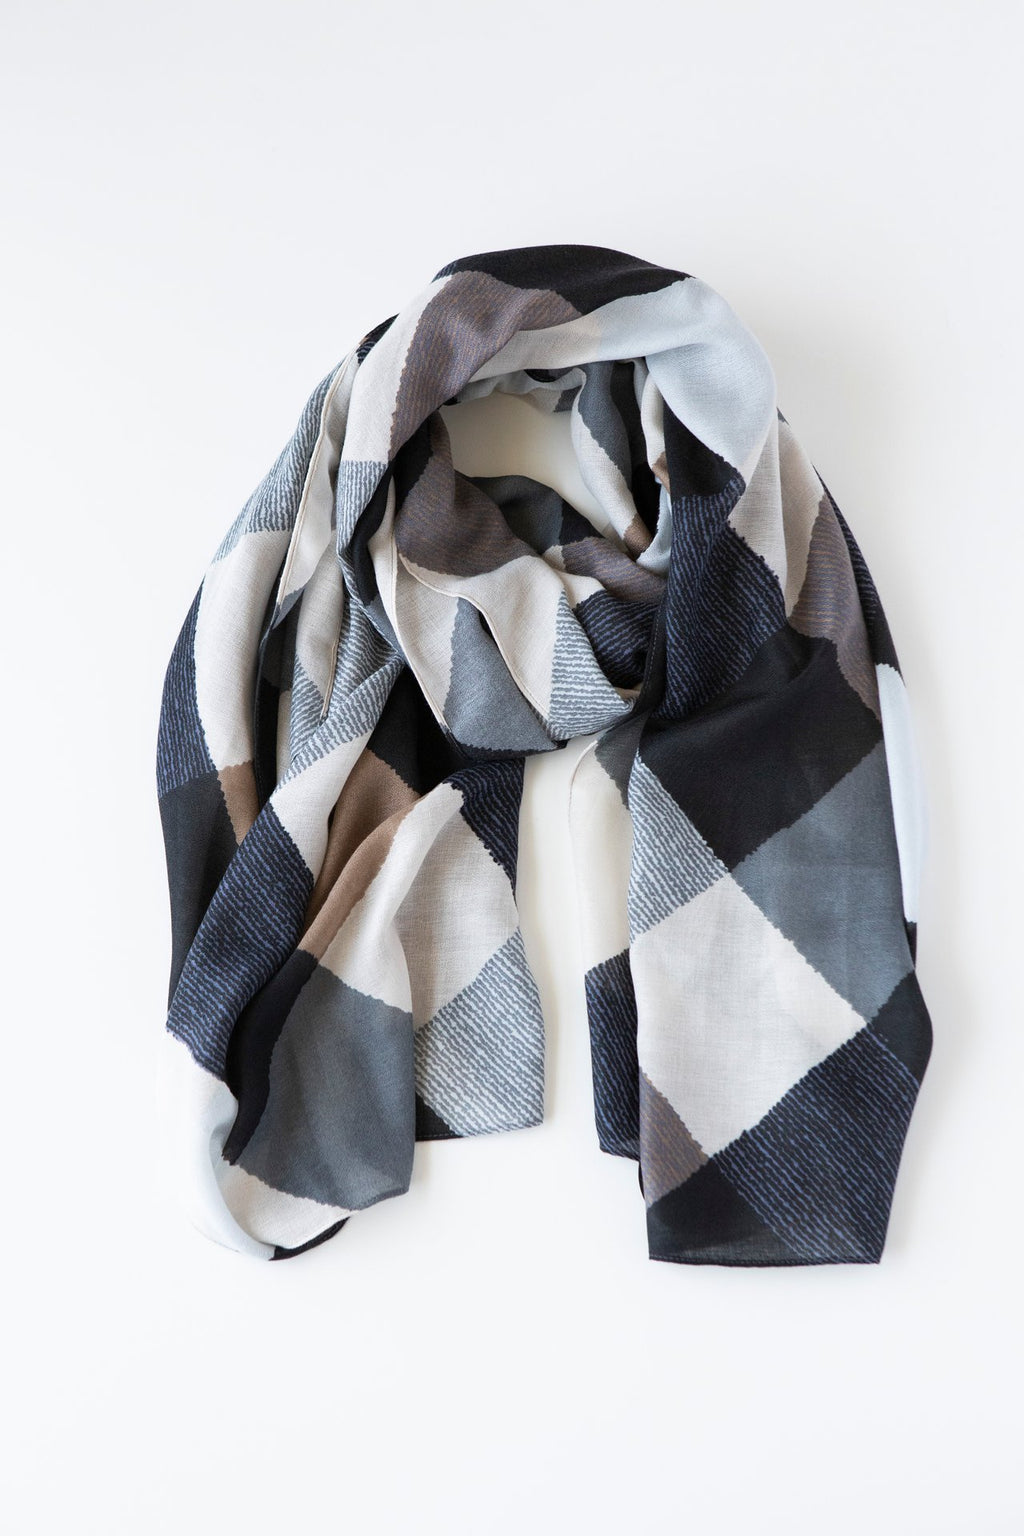 ANTLER Grey Black & Blue Squares Scarf